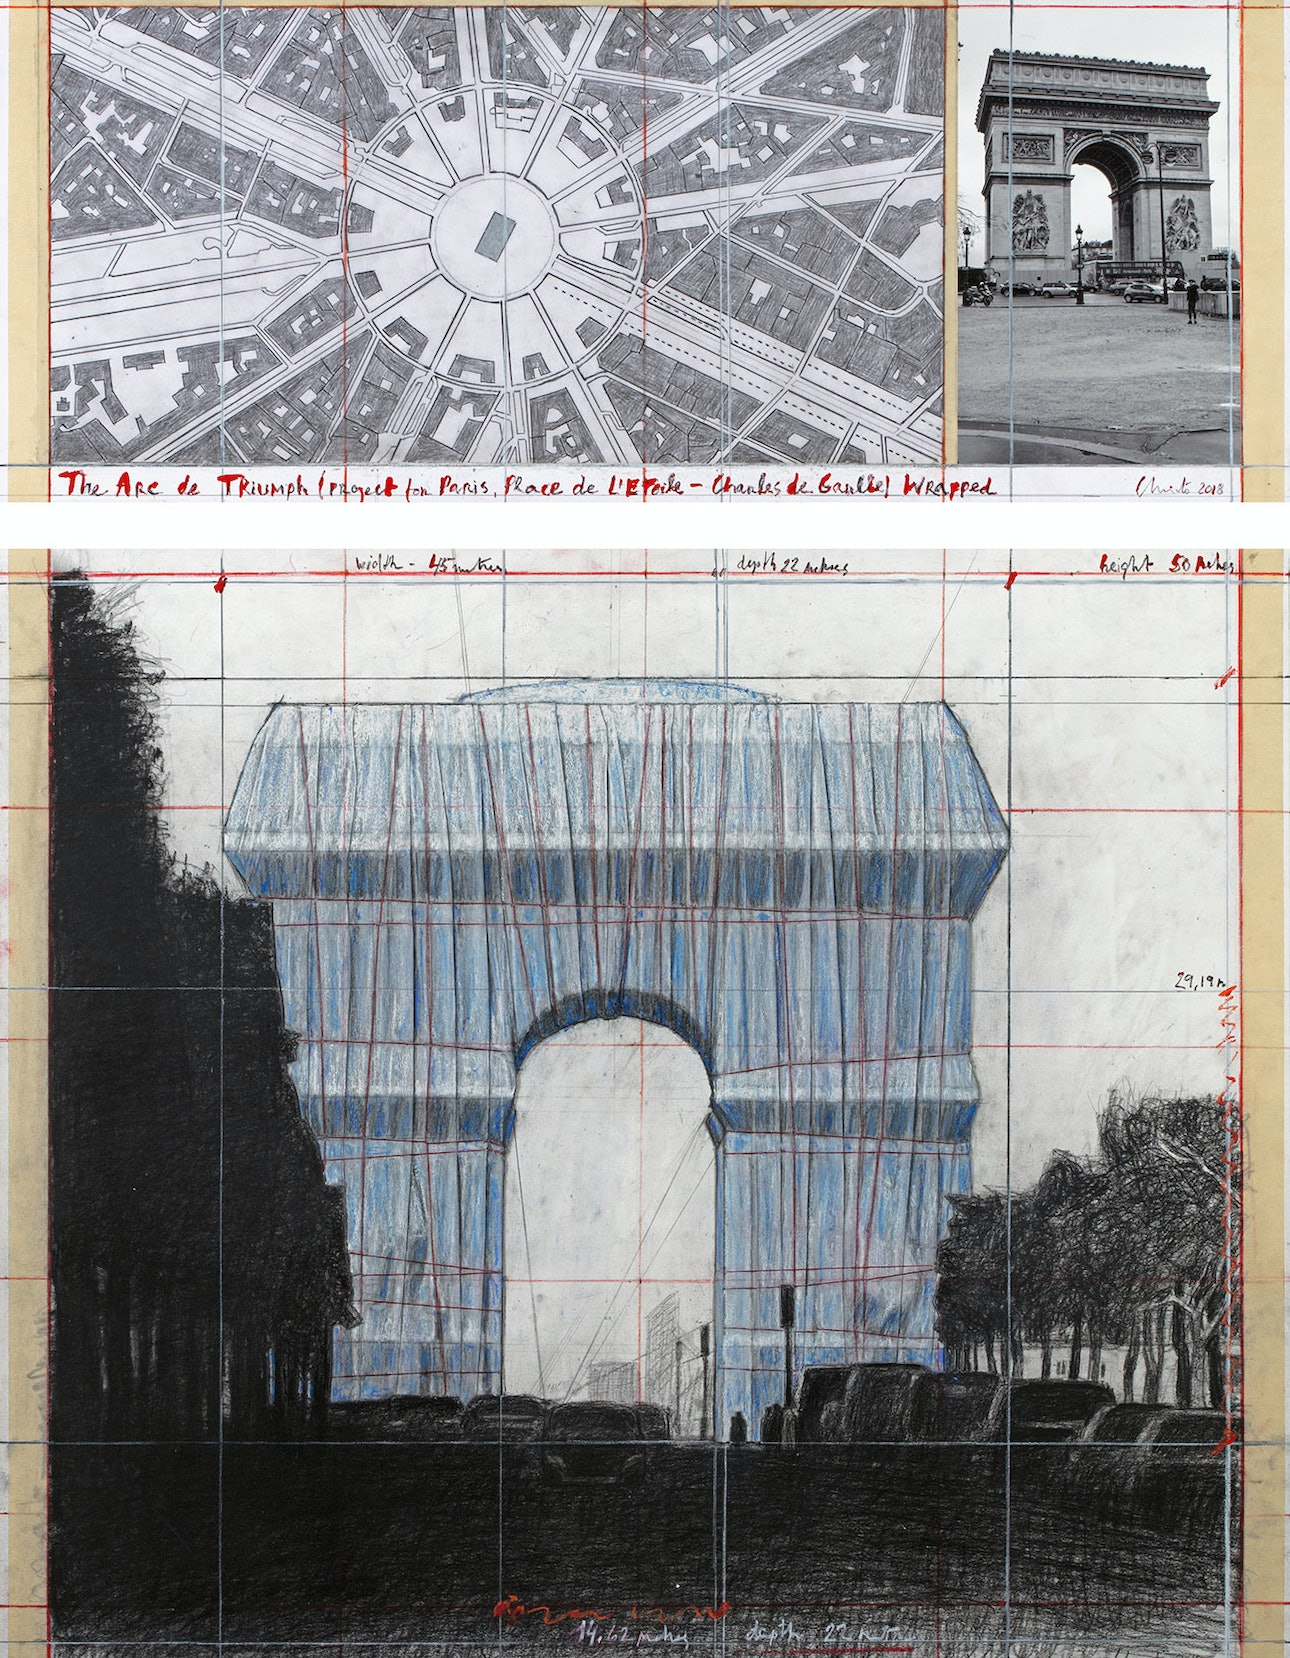 L'Arc de Triomphe, Wrapped - The Arc de Triumph (Project for Paris, Place de l'Etoile – Charles de Gaulle) Wrapped